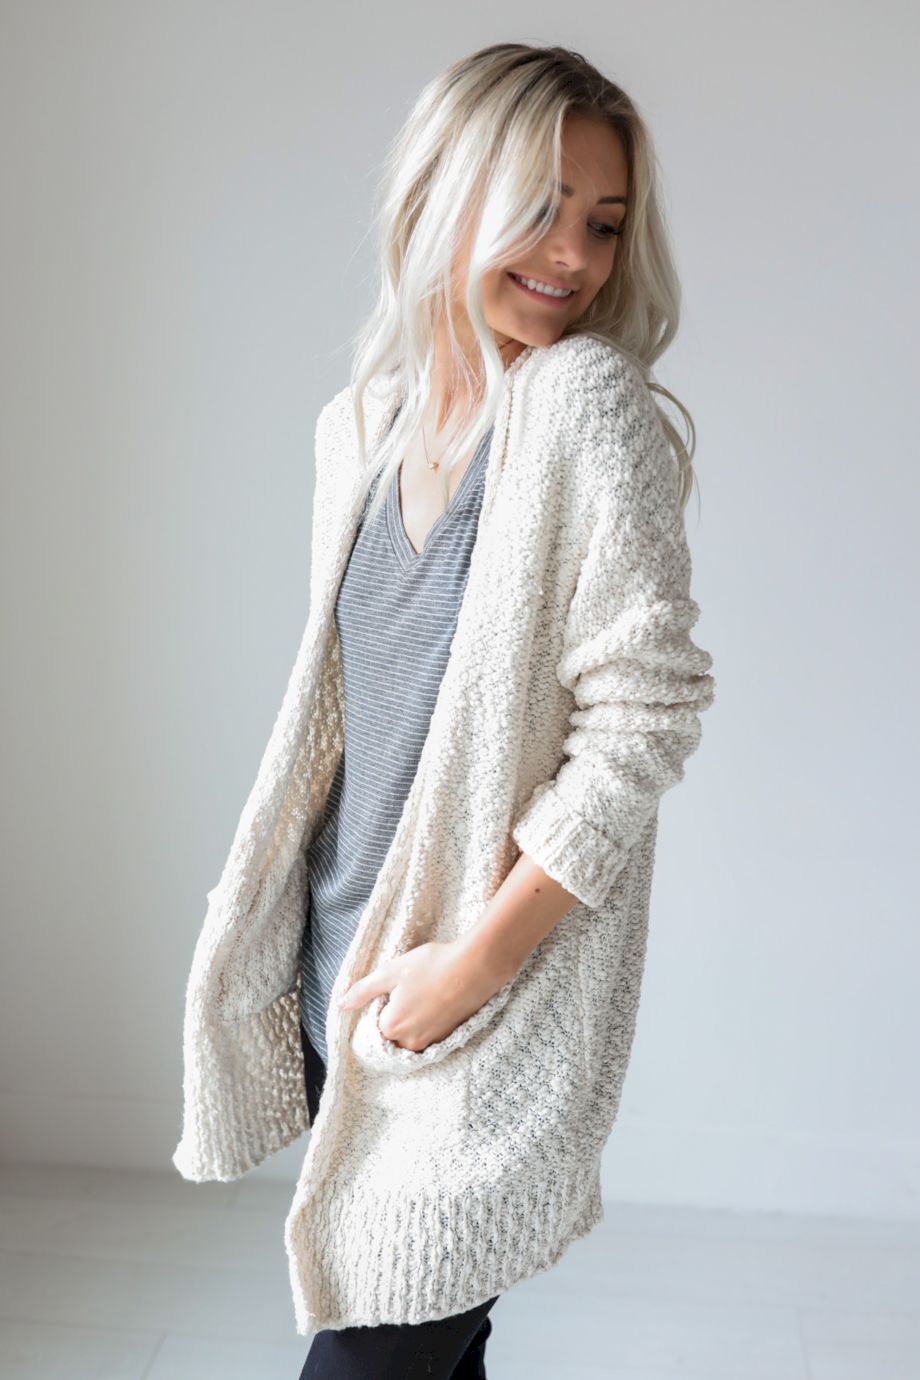 Cardigan outfit 03